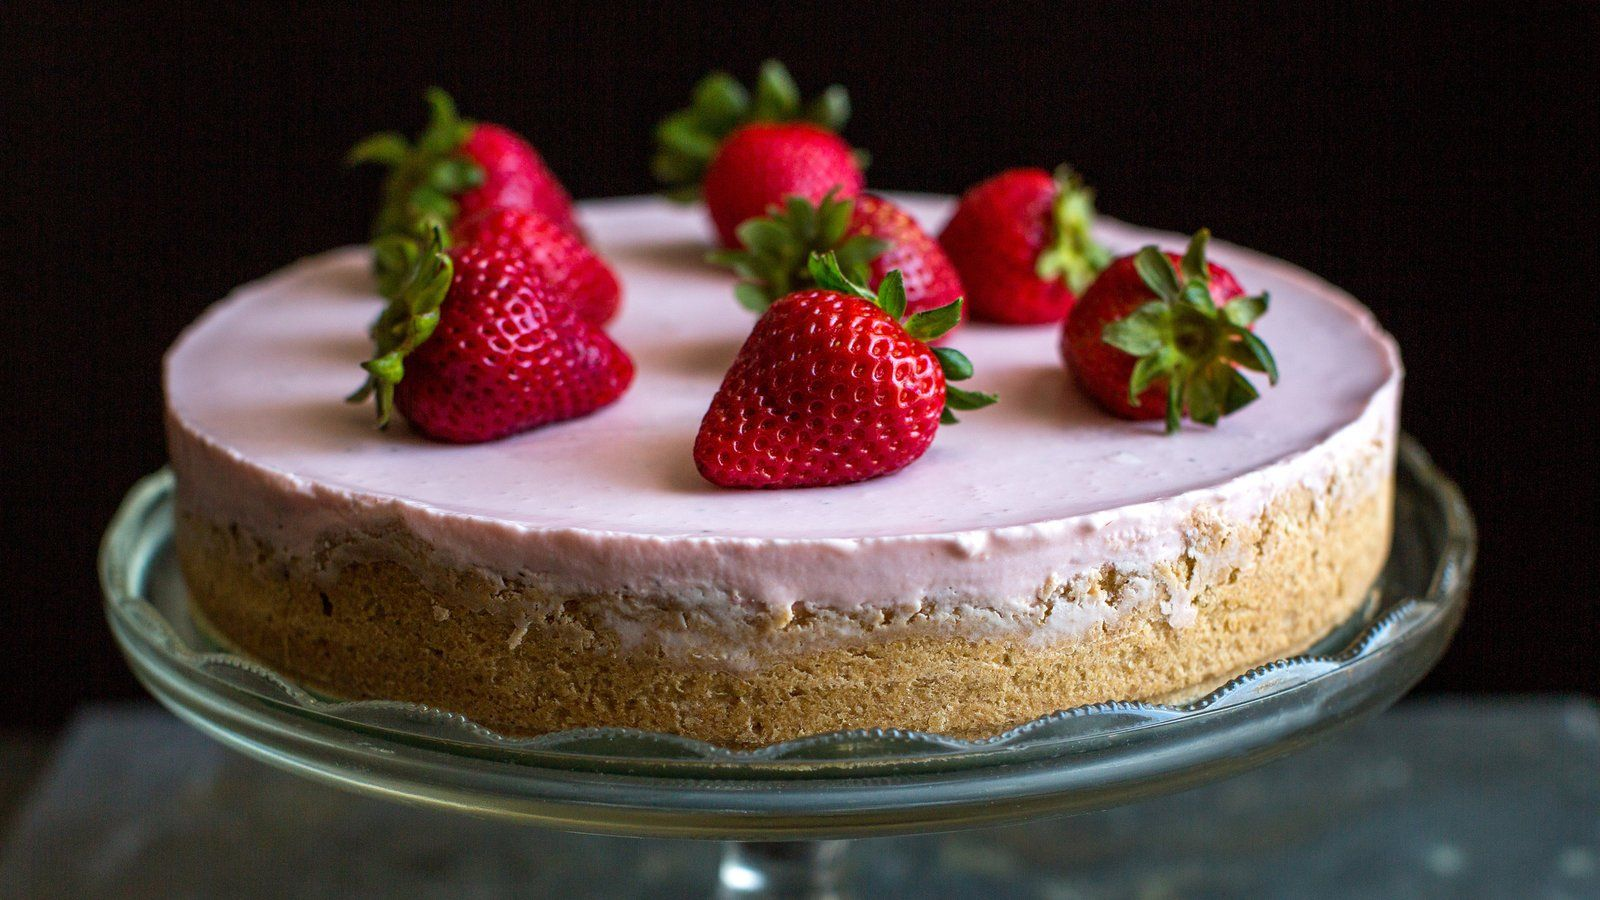 Double Strawberry Cheesecake Recipe Strawberry Cheesecake Recipe Cheesecake Recipes Layered Cheesecake Recipe